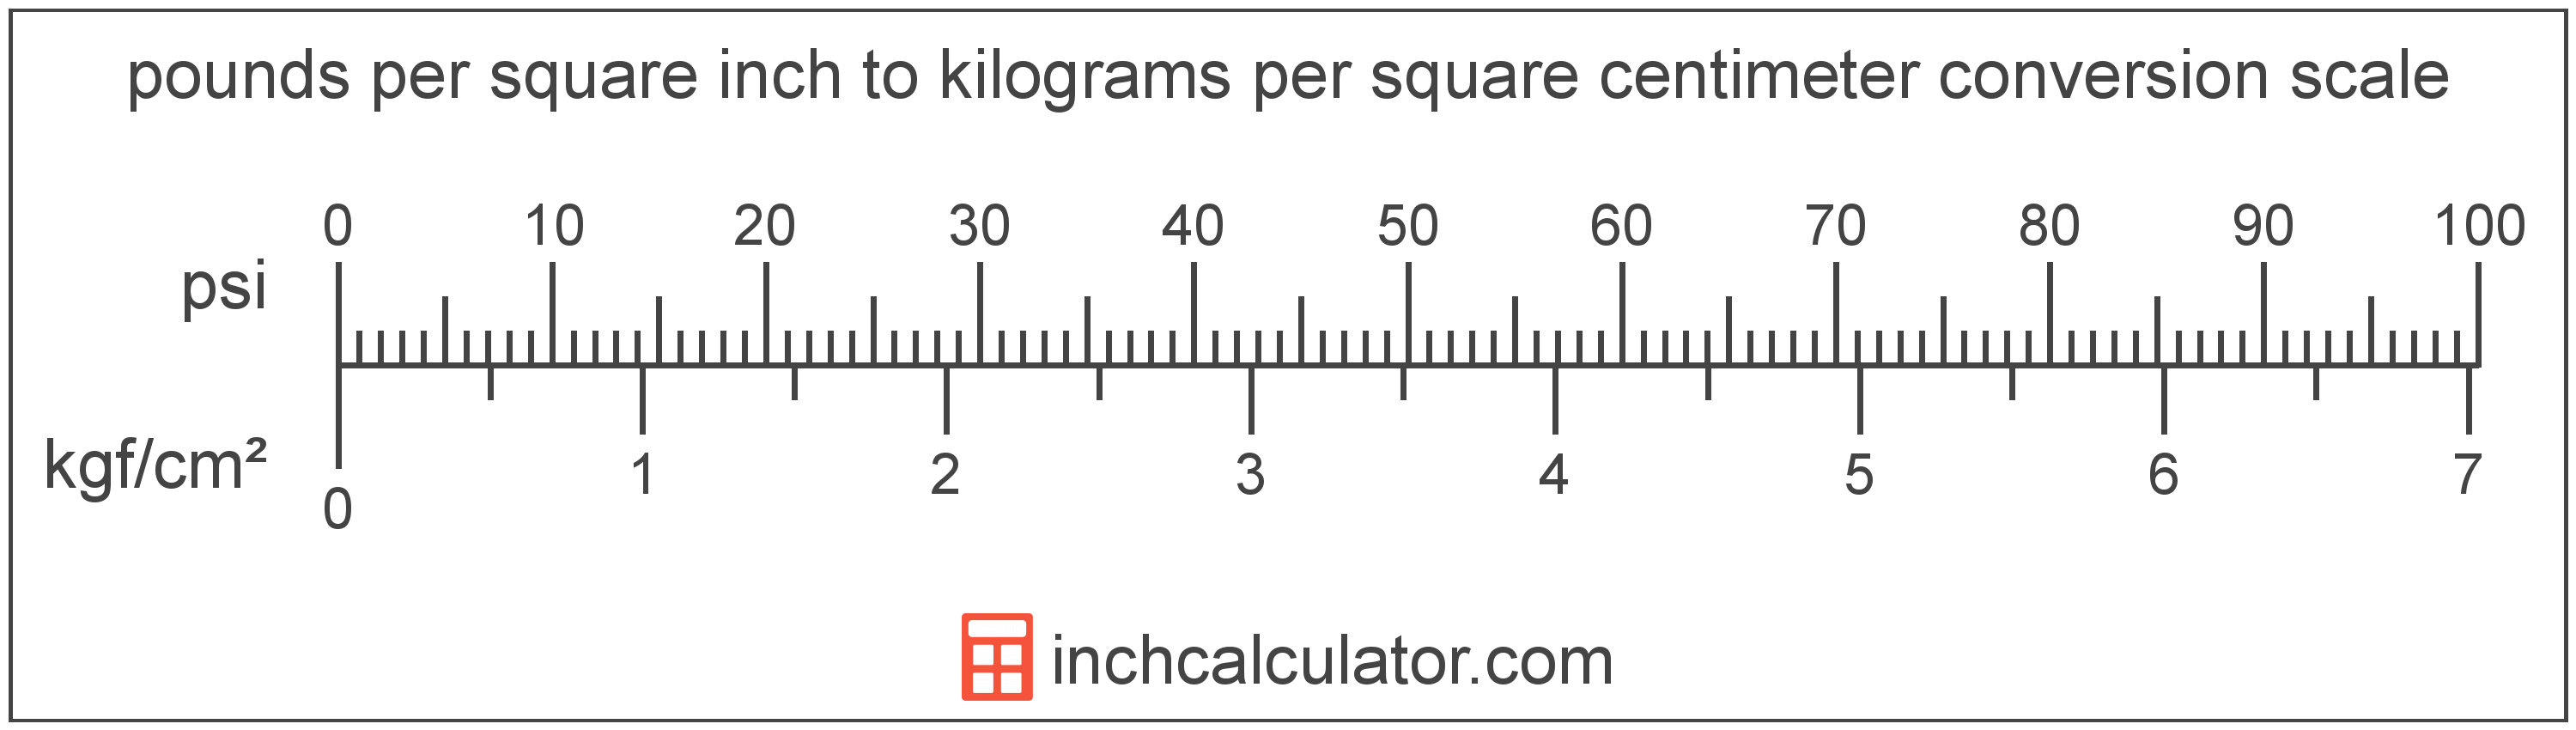 Pounds In Kg Convert Pounds Per Square Inch To Kilograms Per Square